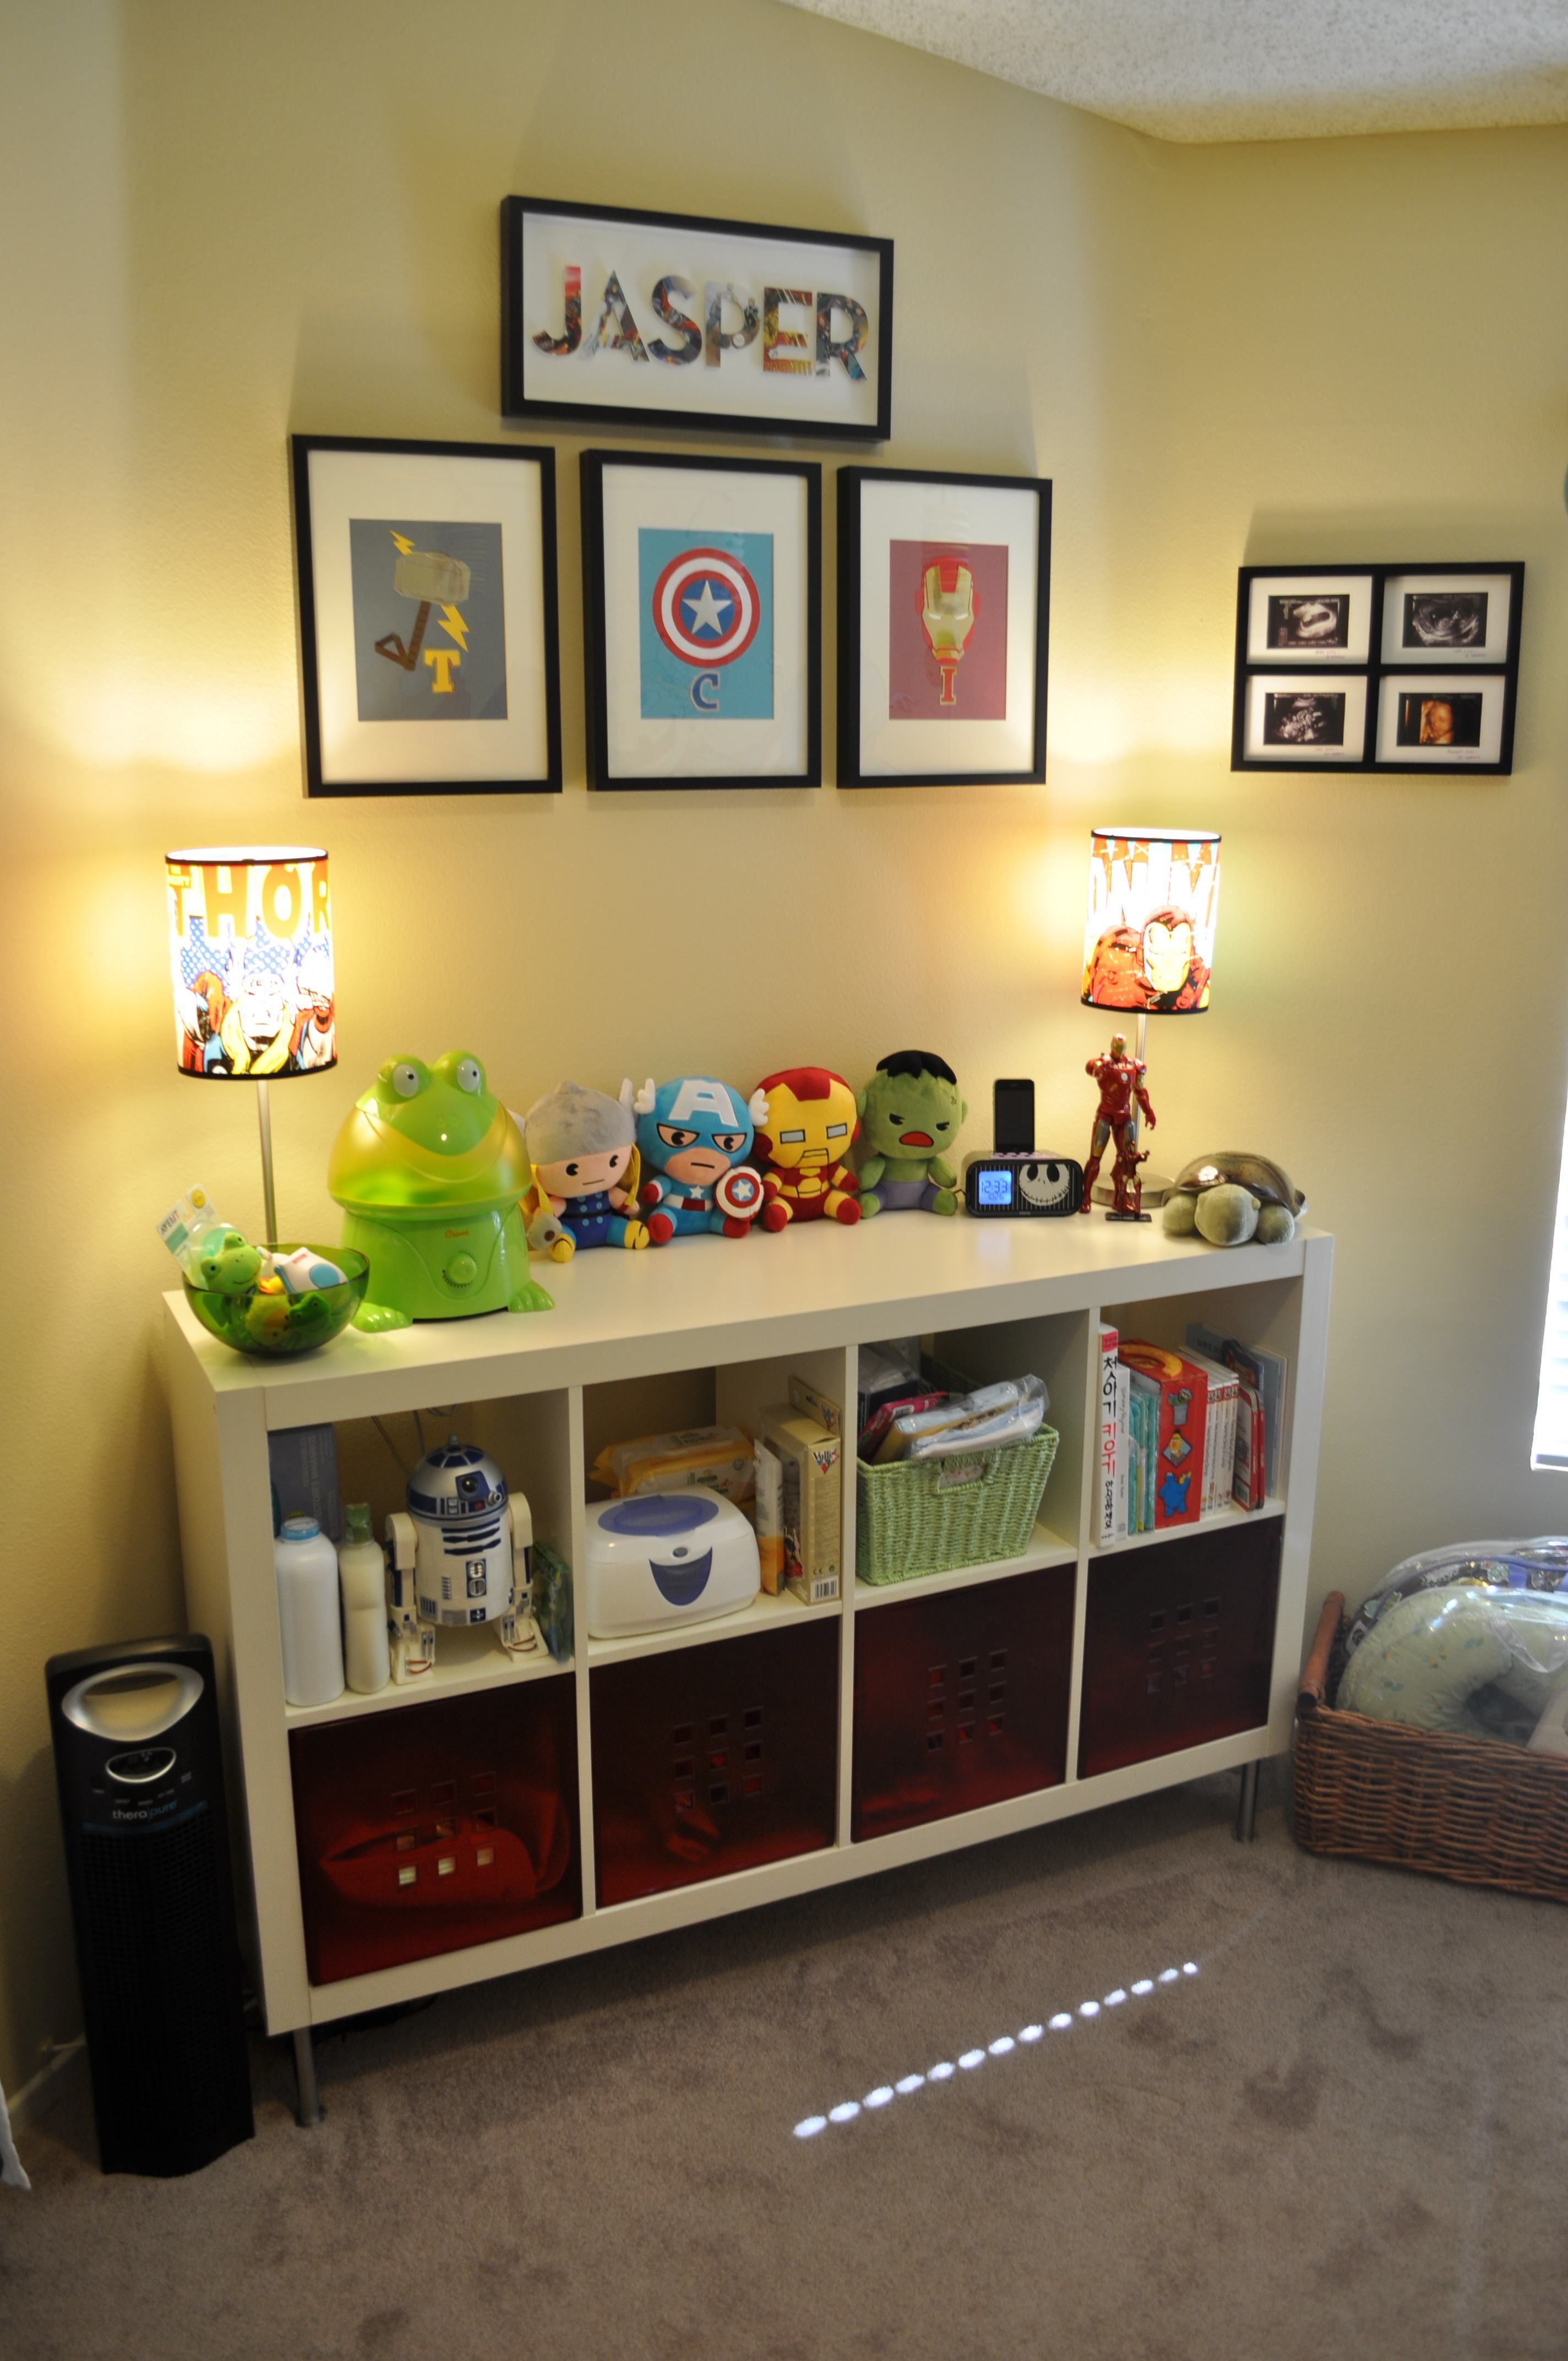 This Could Be A Reading Corner For The Boys Throw Some Comfy Pillows On Floor And Have Storage Filled With Books